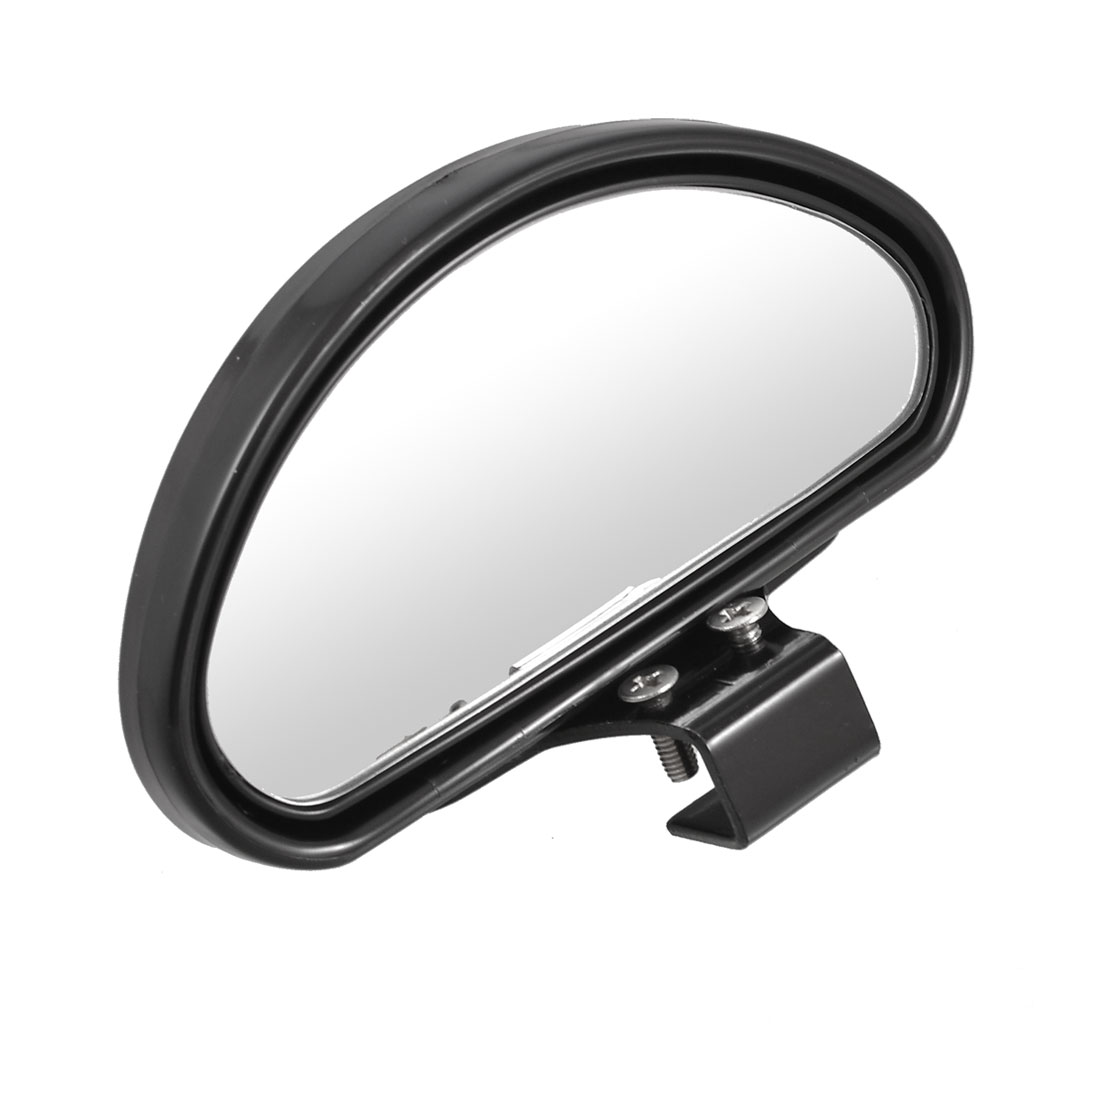 Black Plastic Casing Rear View Blind Spot Mirror for Vehicles